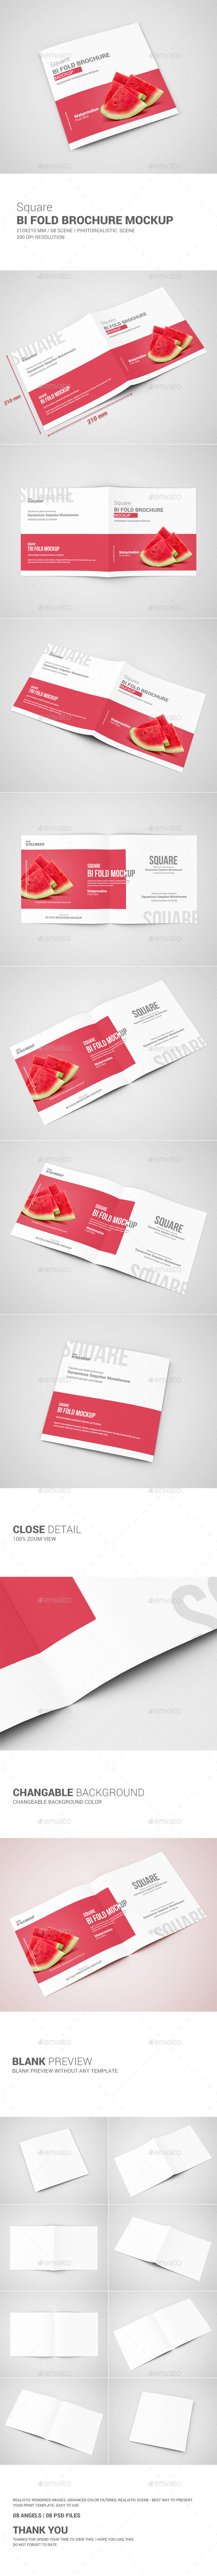 GraphicRiver Square Bi-Fold Brochure Mock-Up 10987213